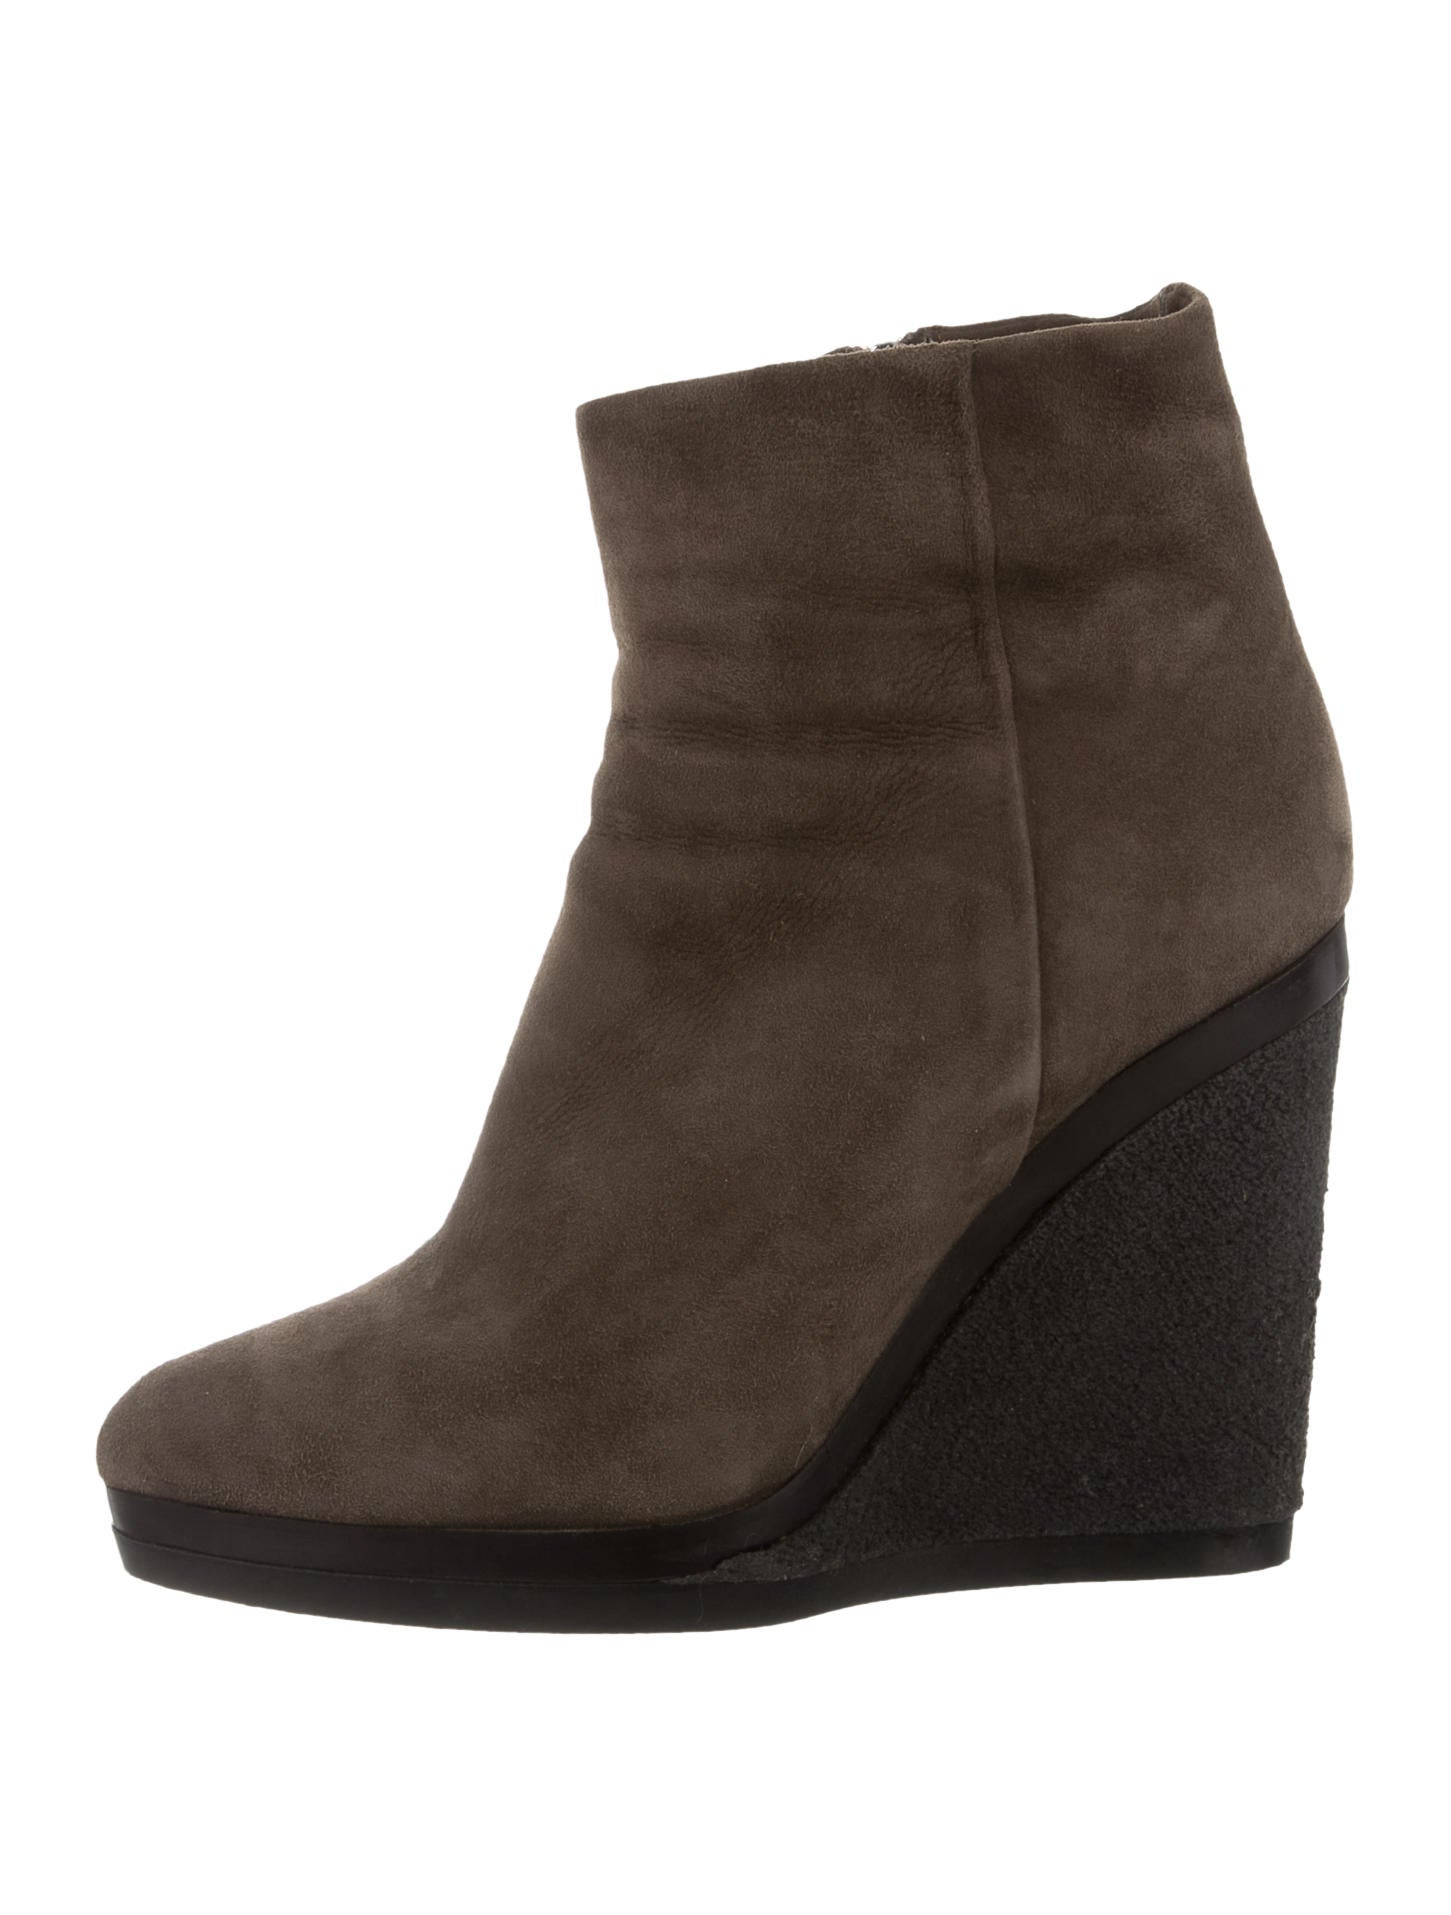 calvin klein collection suede wedge ankle boots shoes